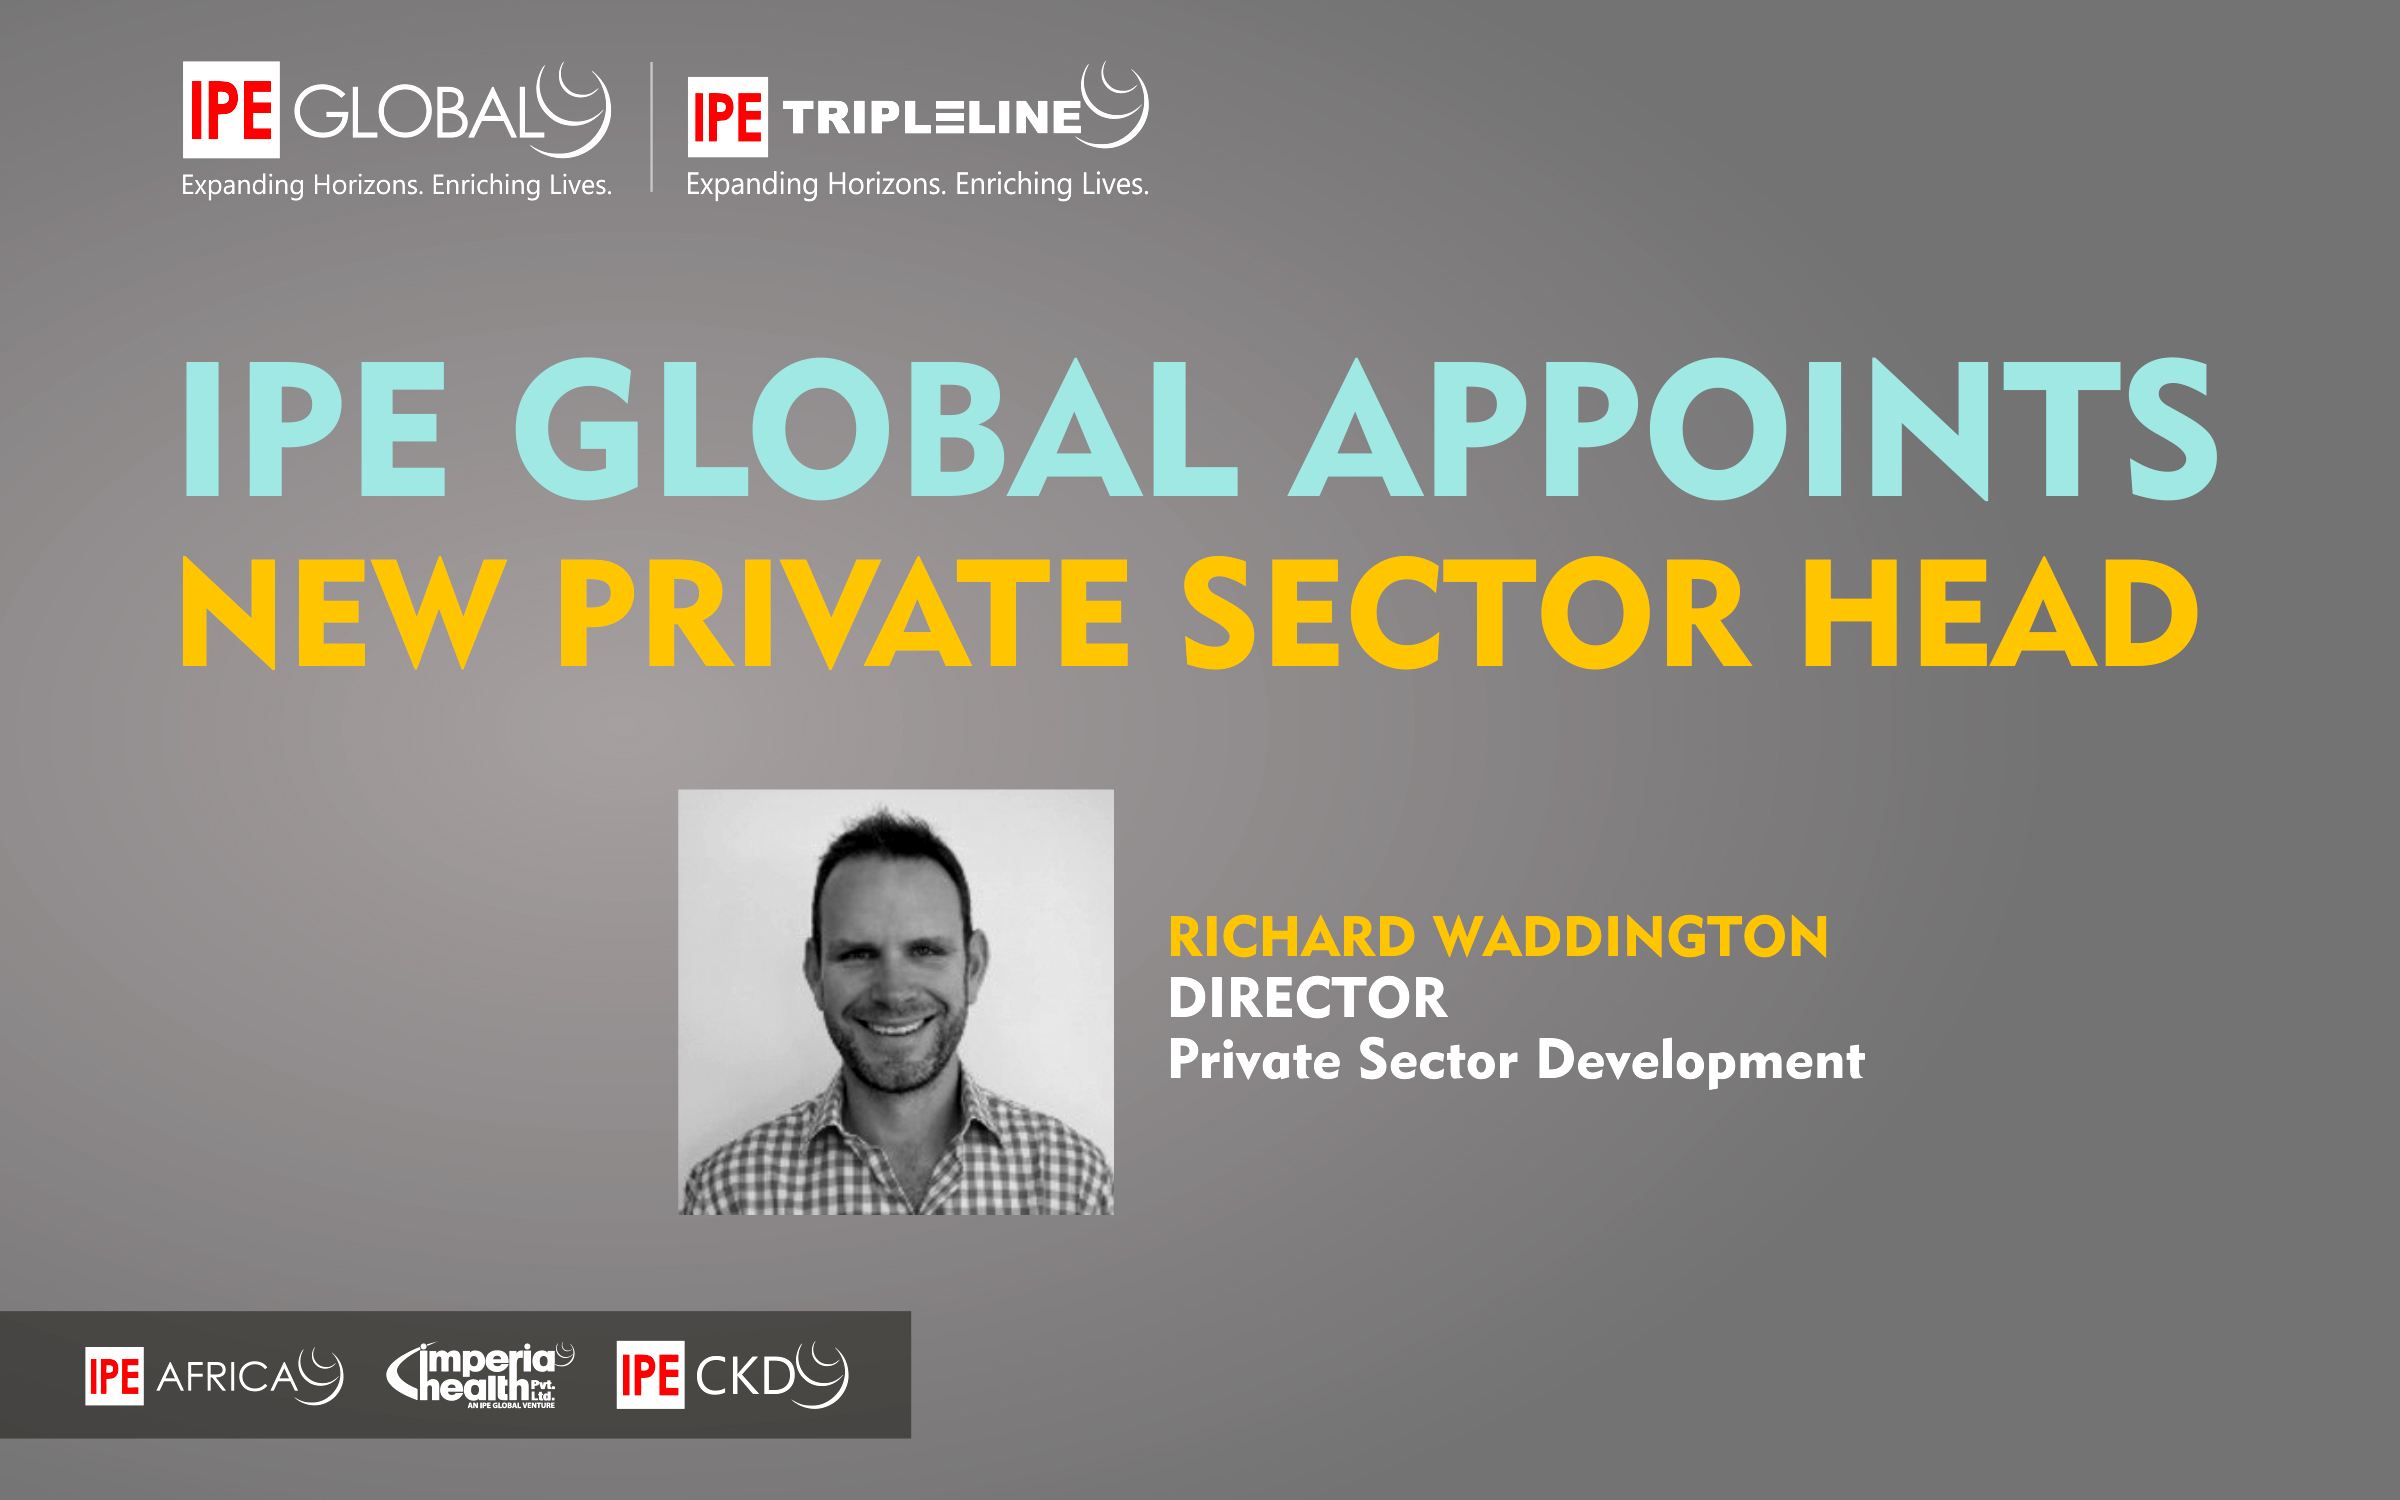 IPE Global continues to broaden its Private Sector Development capability